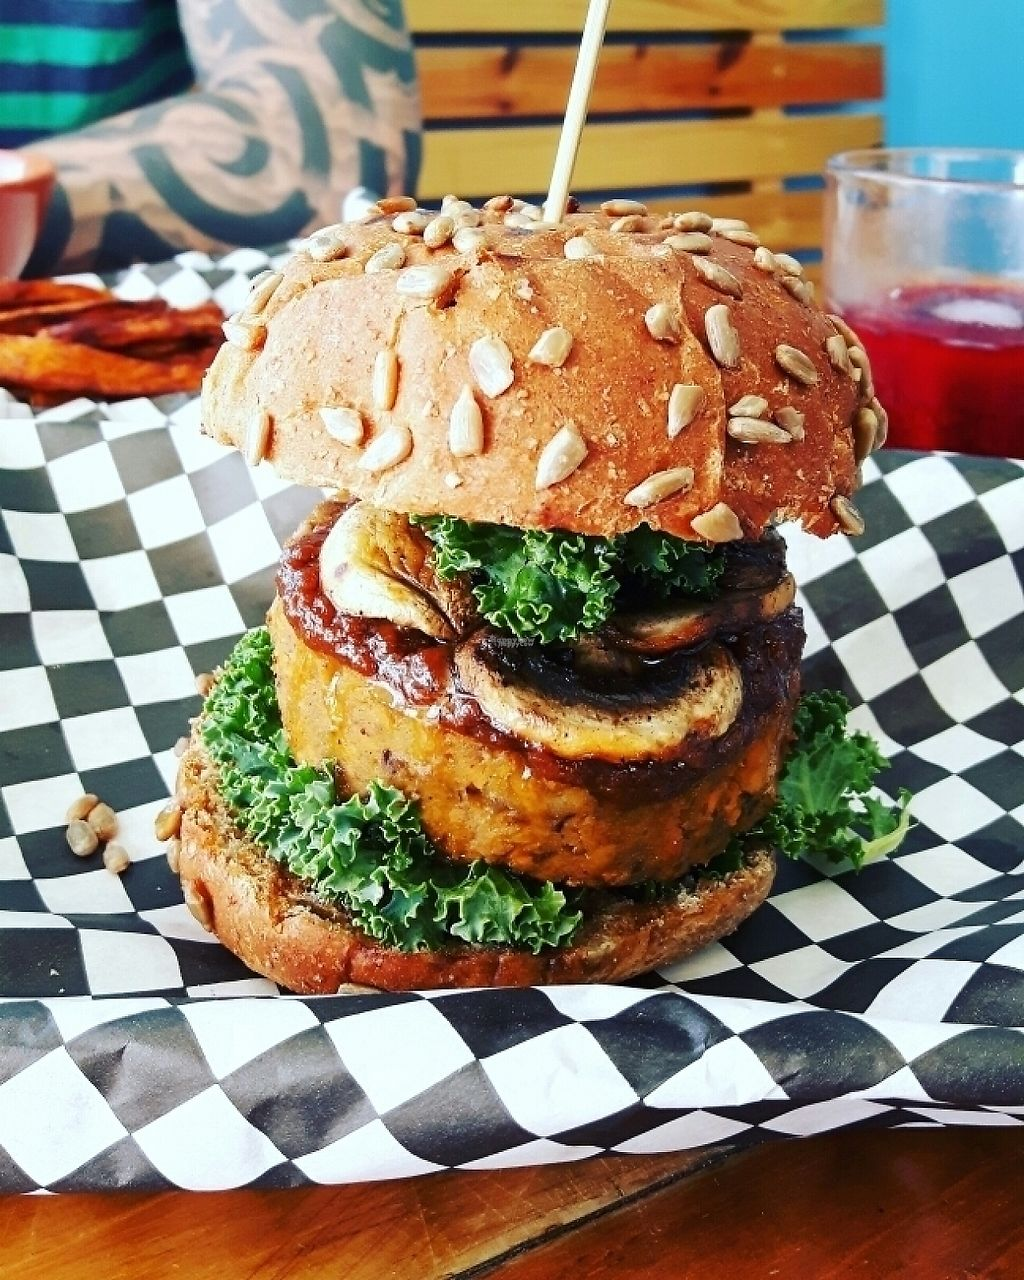 """Photo of Max & Bee Juicery  by <a href=""""/members/profile/dina_v"""">dina_v</a> <br/>Love Burger (vegan) sweet potato/lentils/mushroom/peanut sauce <br/> March 21, 2017  - <a href='/contact/abuse/image/83855/239236'>Report</a>"""